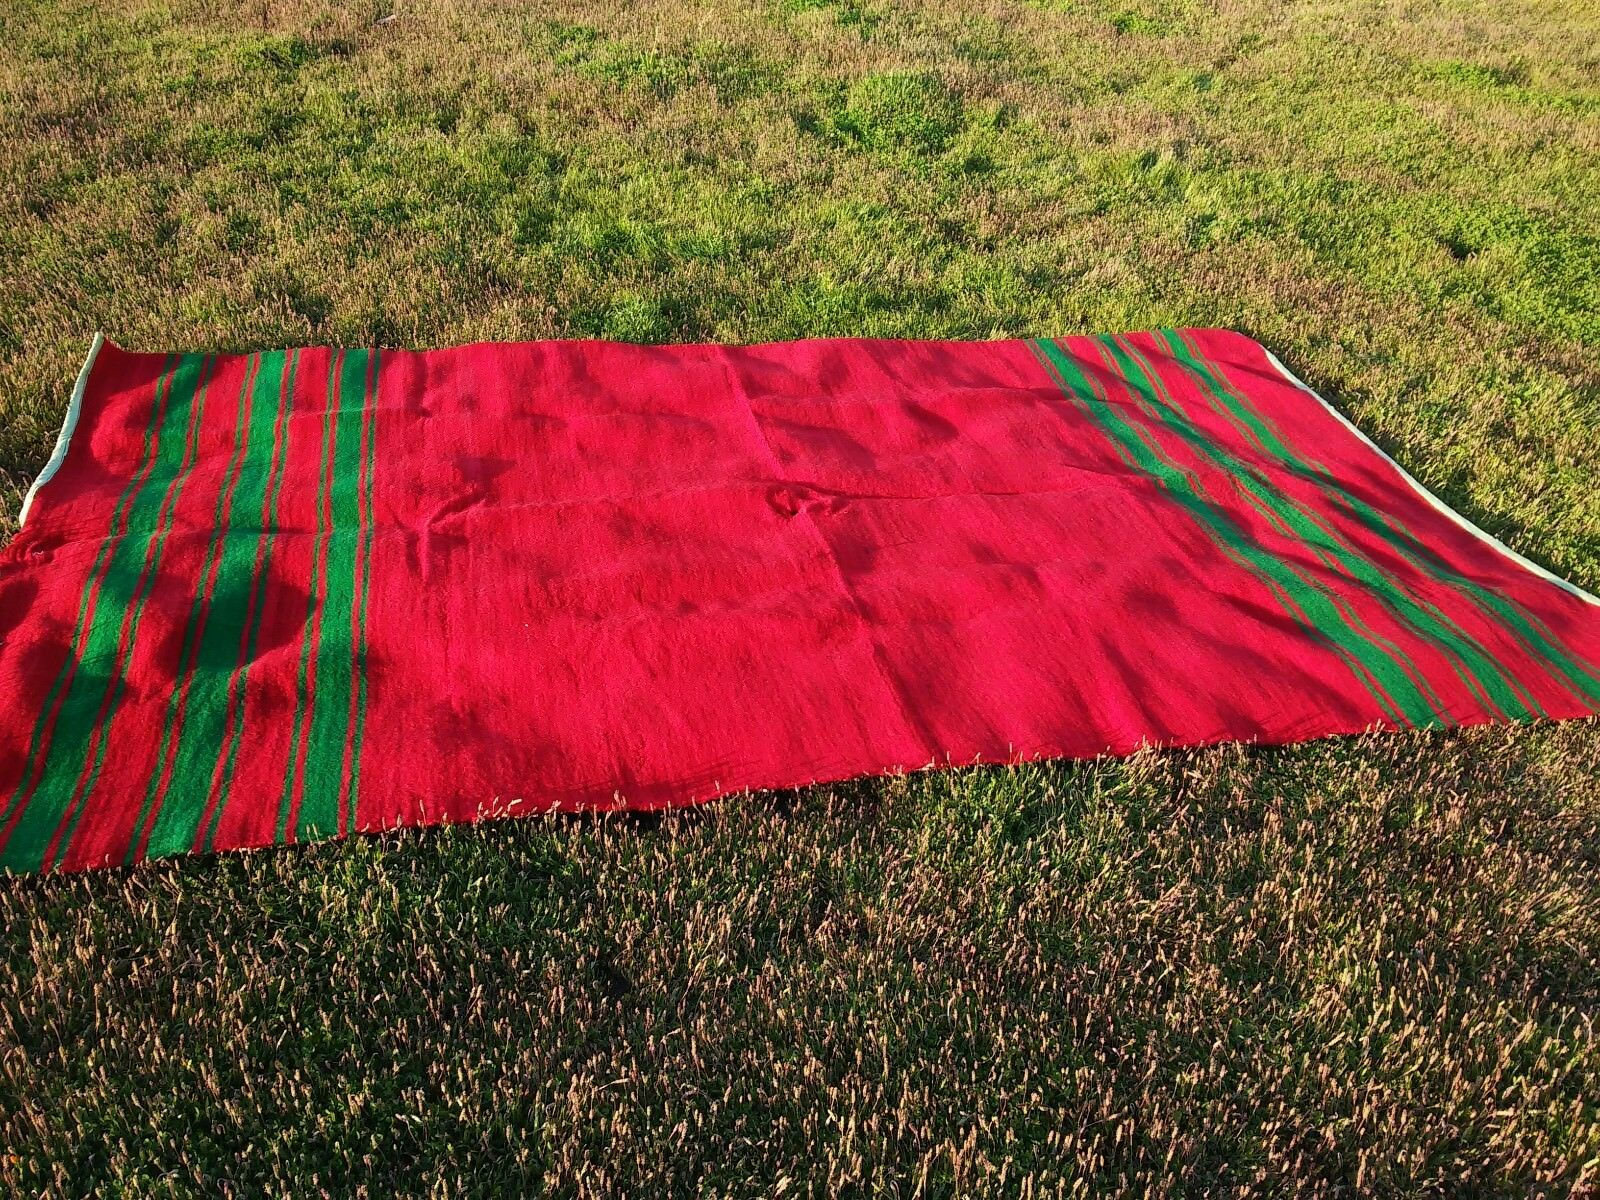 Vintage Large Blankets Throw pure wool bed Cover handmade Mgoldccan 10'3x5'9 Feet